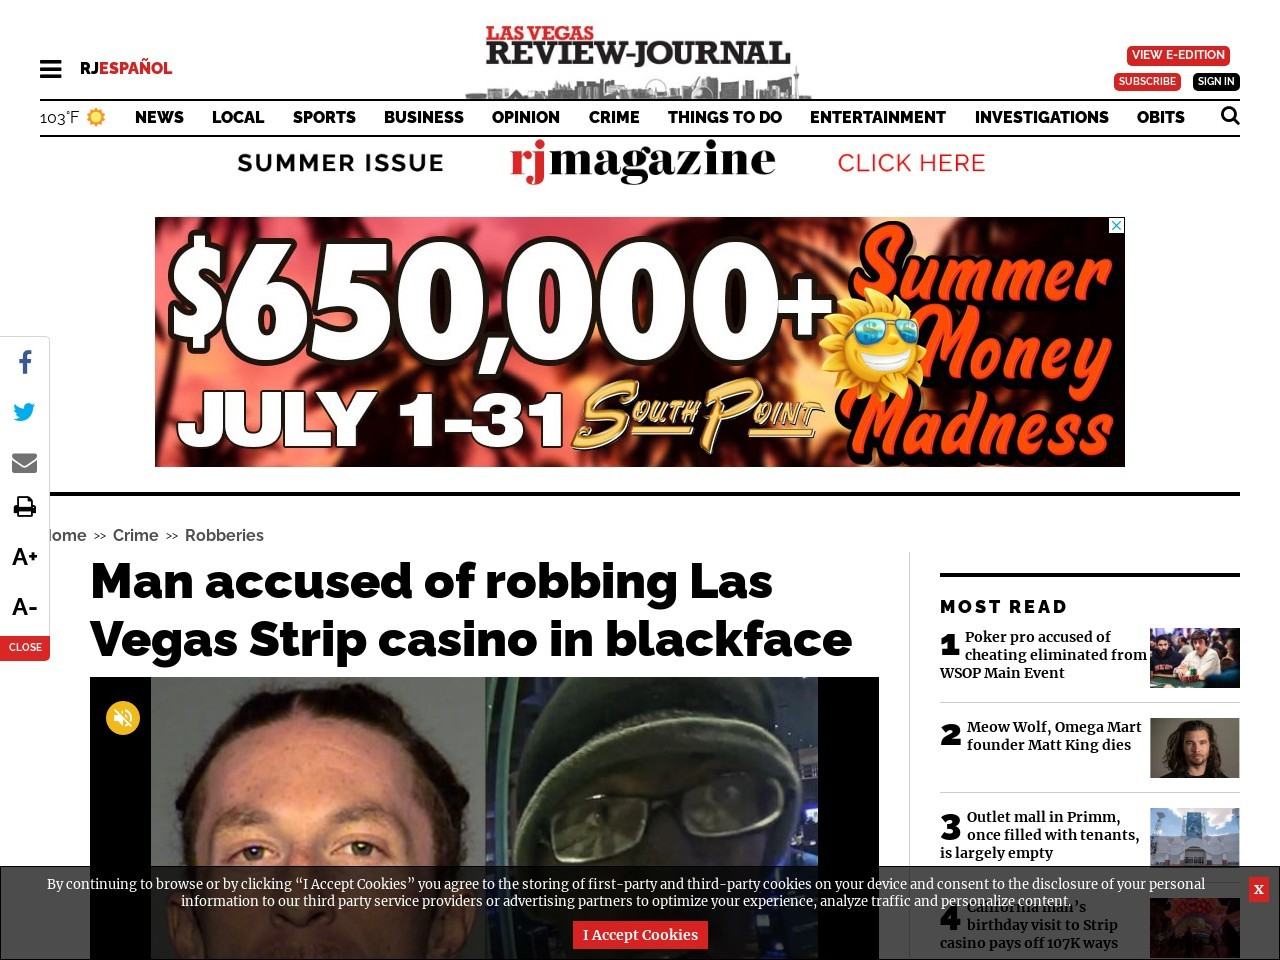 Man accused of robbing Las Vegas Strip casino in blackface